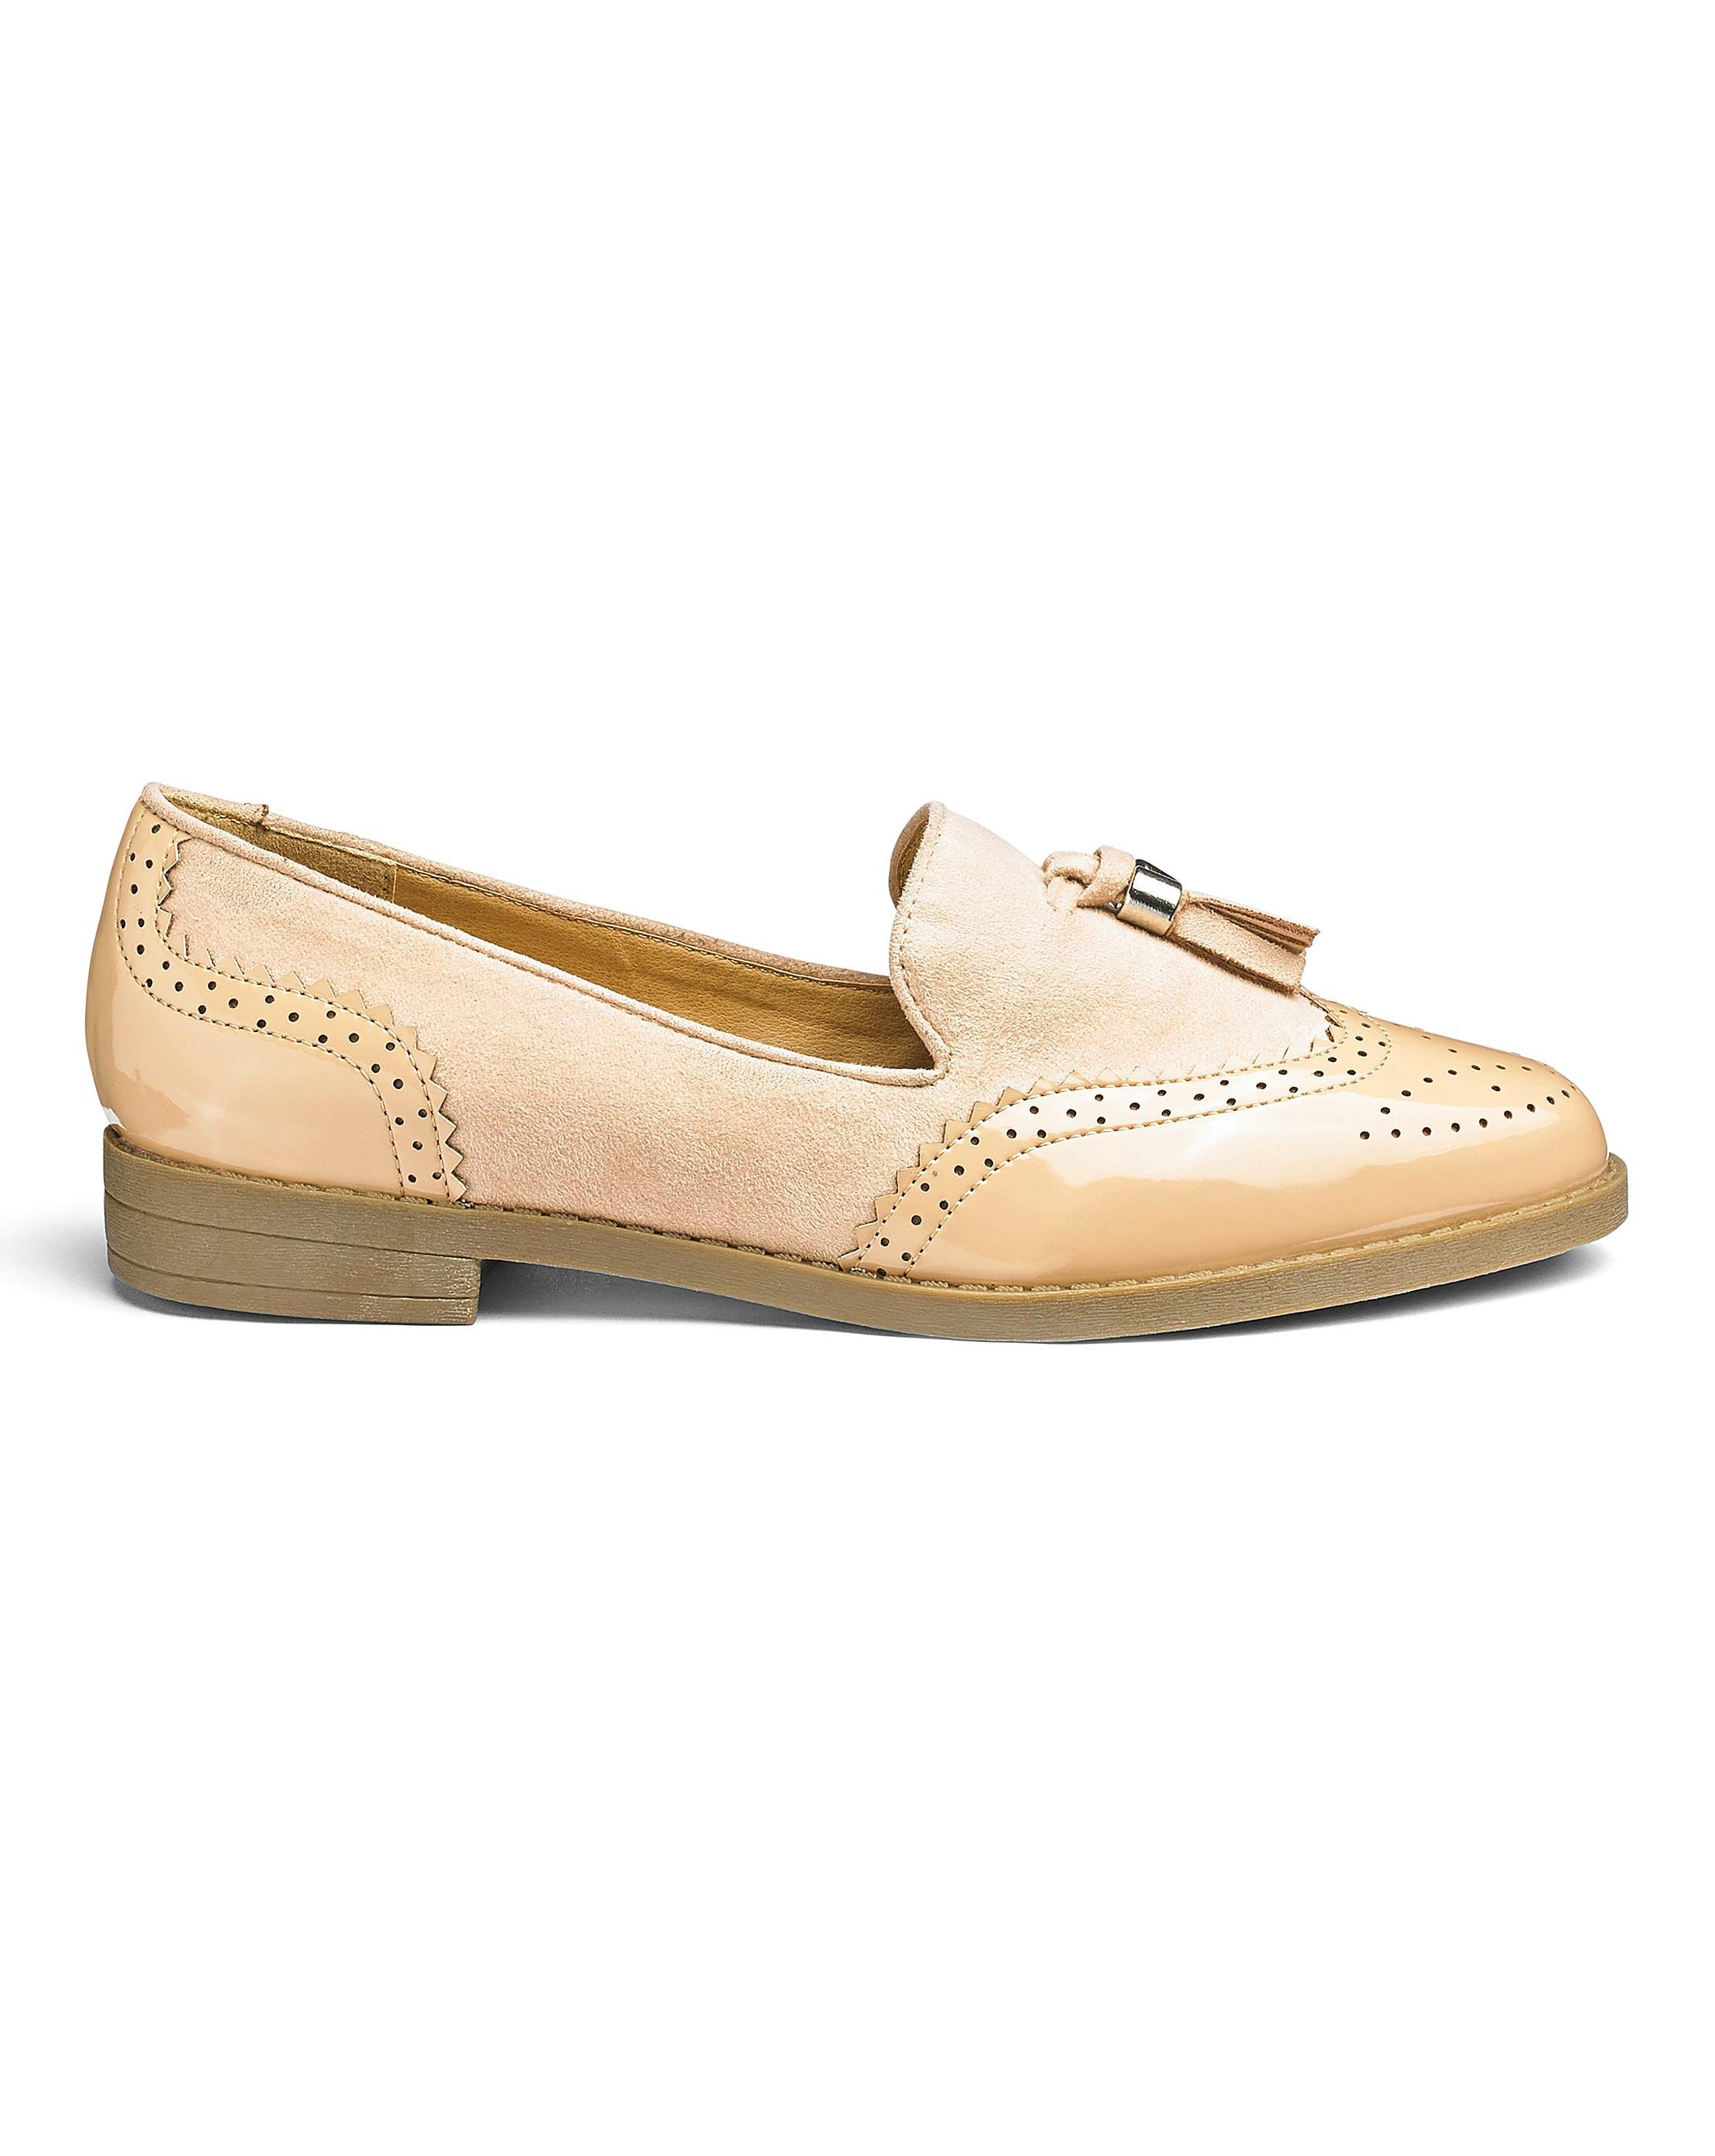 Sole Diva Tassel Loafers